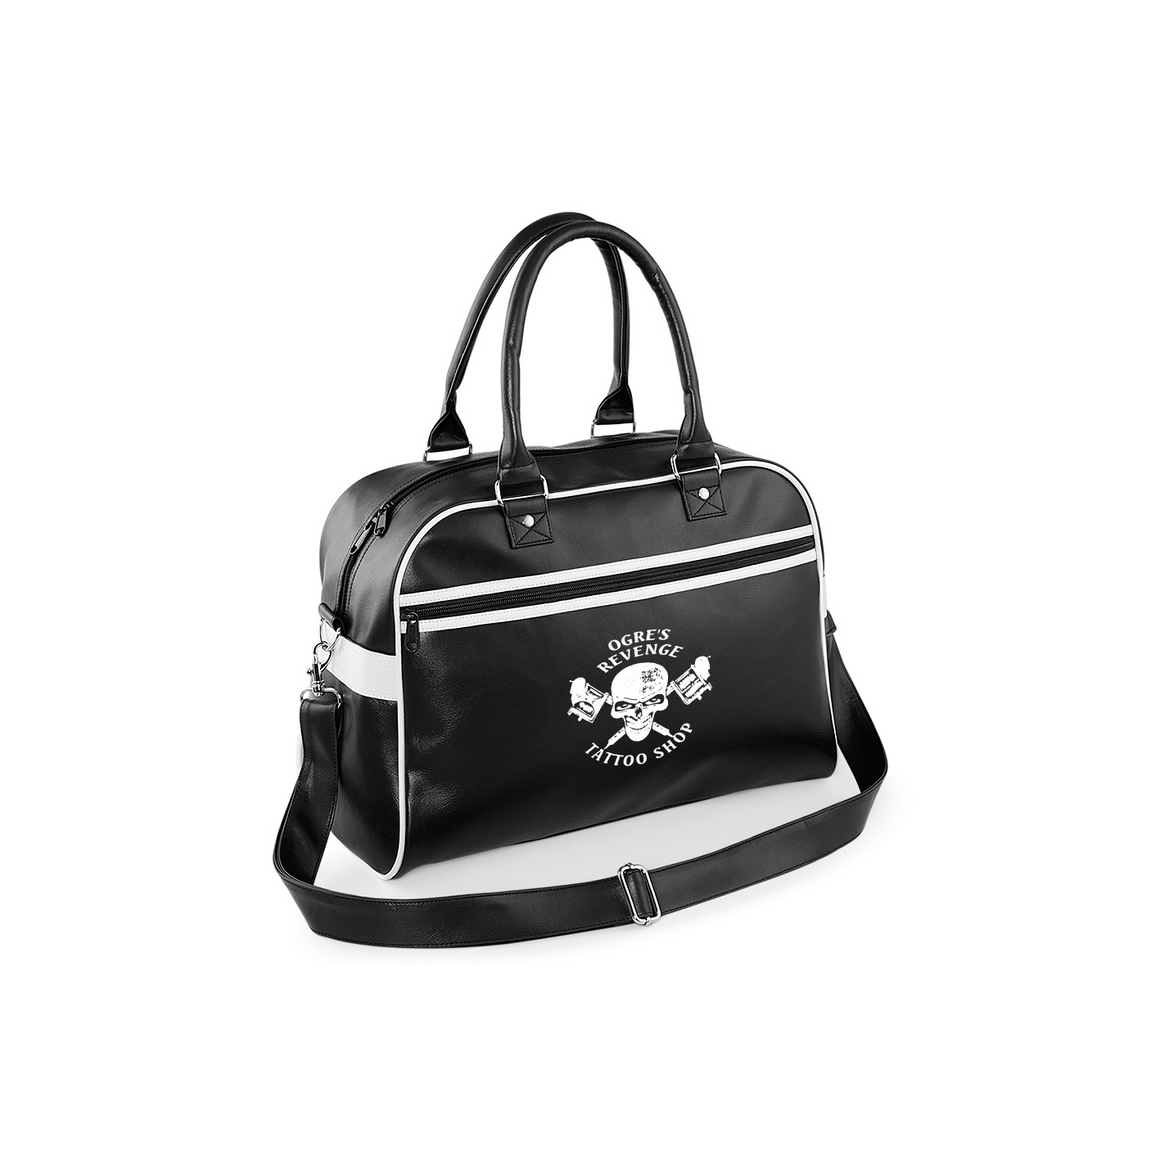 Ogres Revenge Tattoo Shop Bowling Bag - Made From PU For That Old School Leather Look